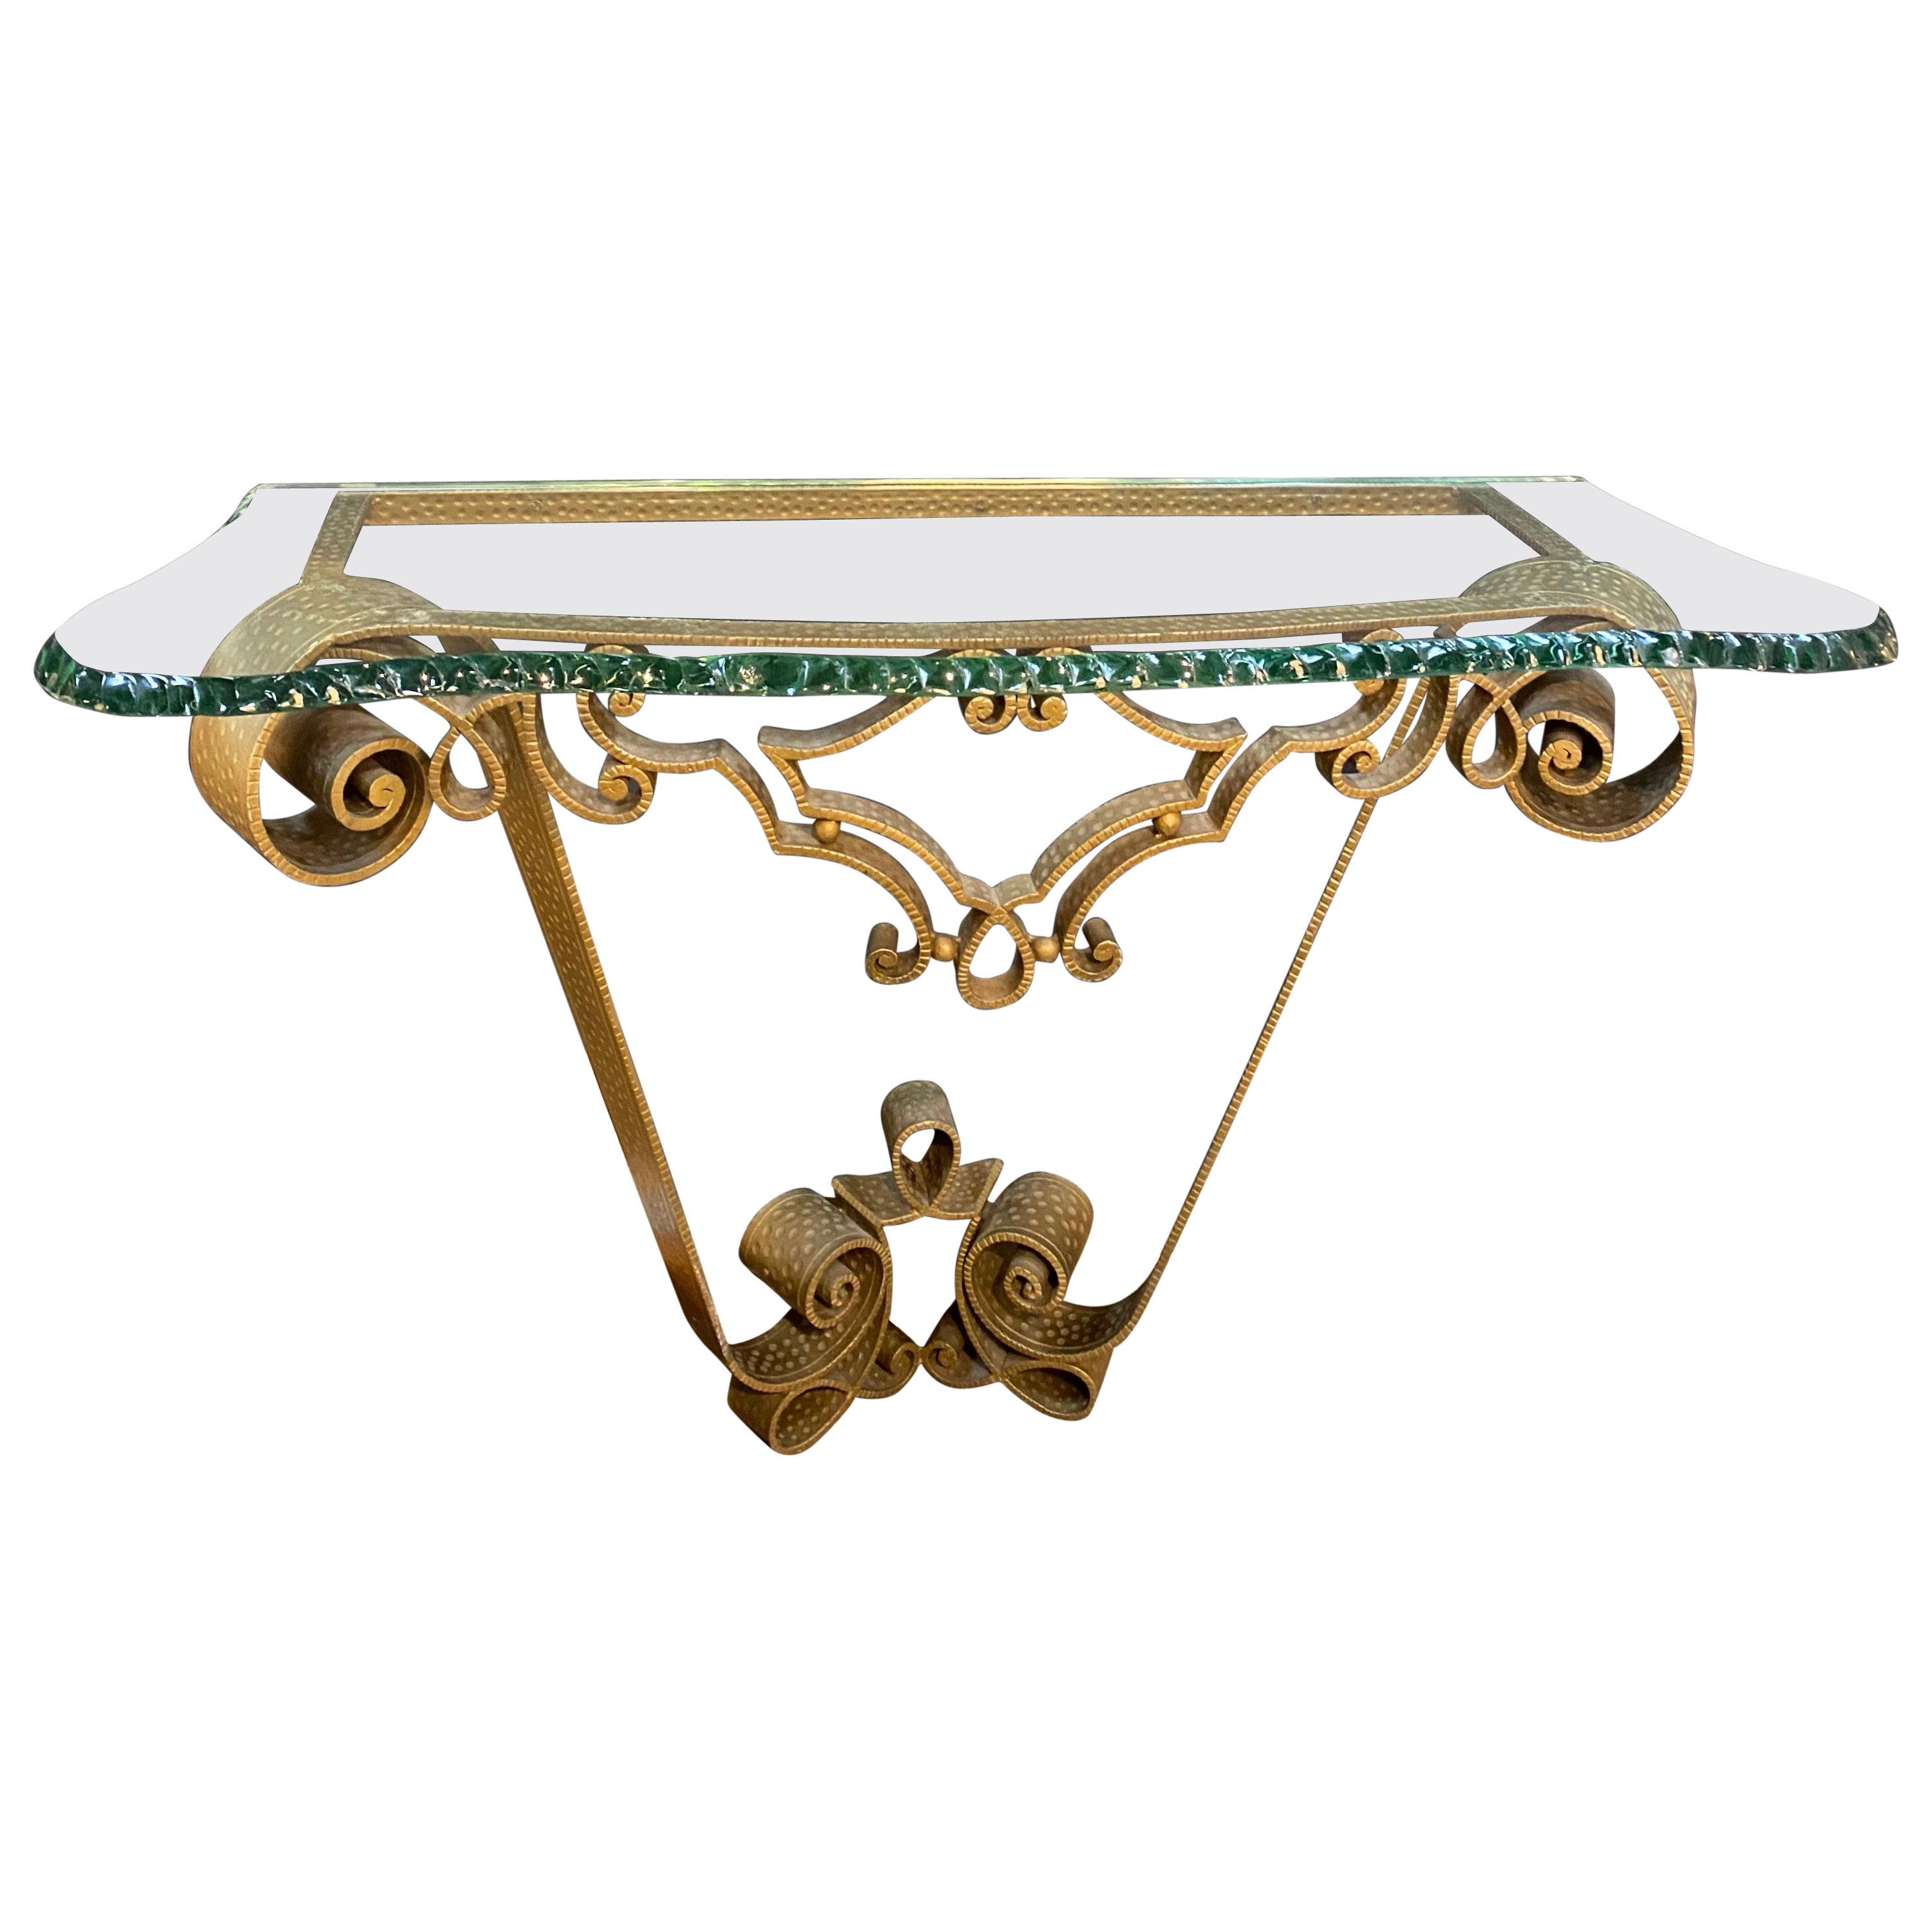 Console Wrought Iron Gold Leaf by Pier Luigi Colli, Italy, 1950s